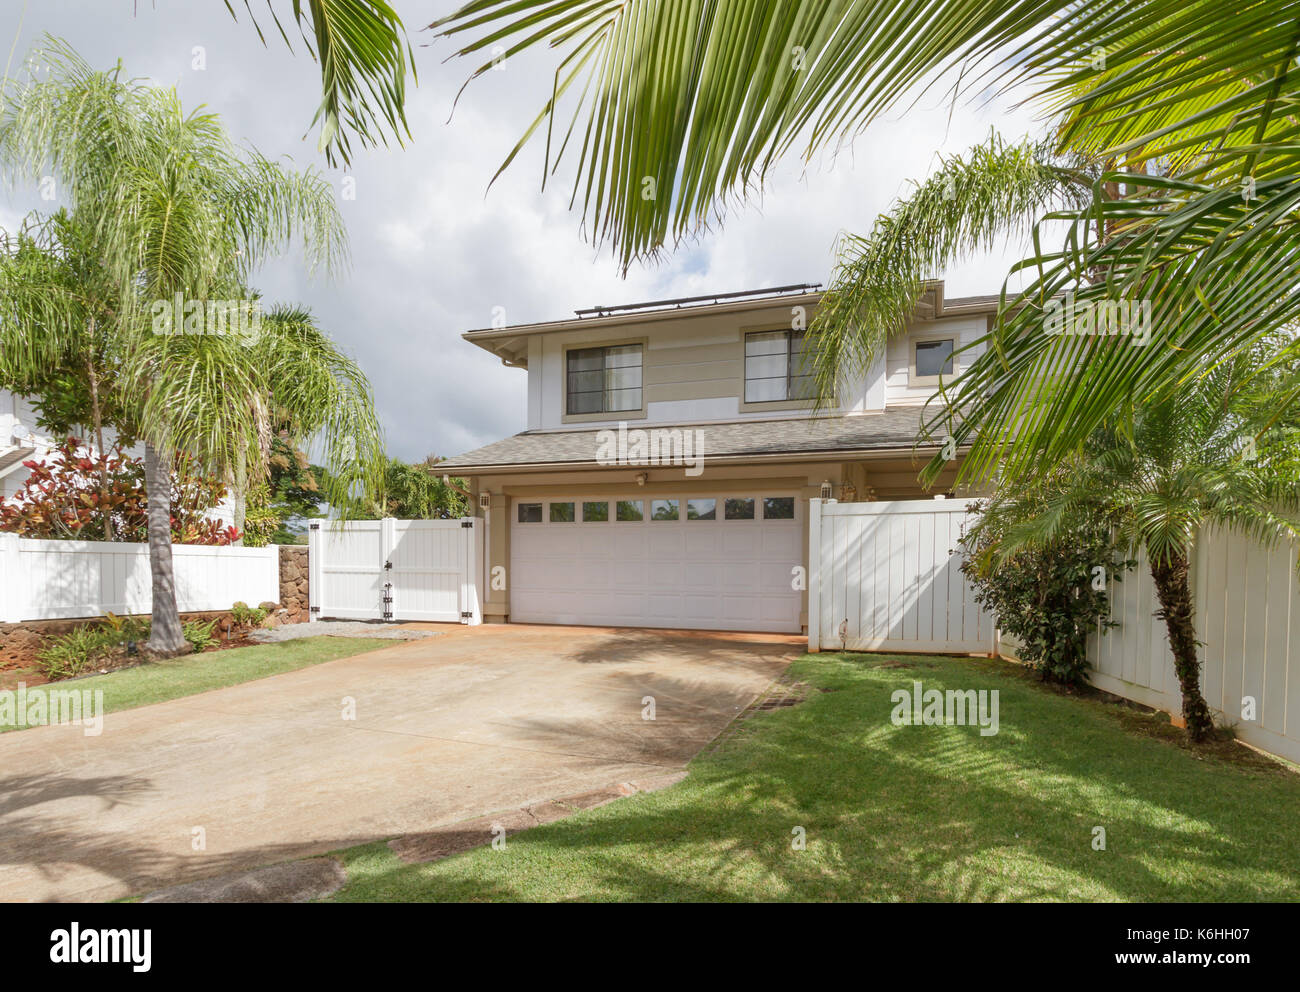 Exterior view of an upscale two story tract house in Hawaii - Stock Image